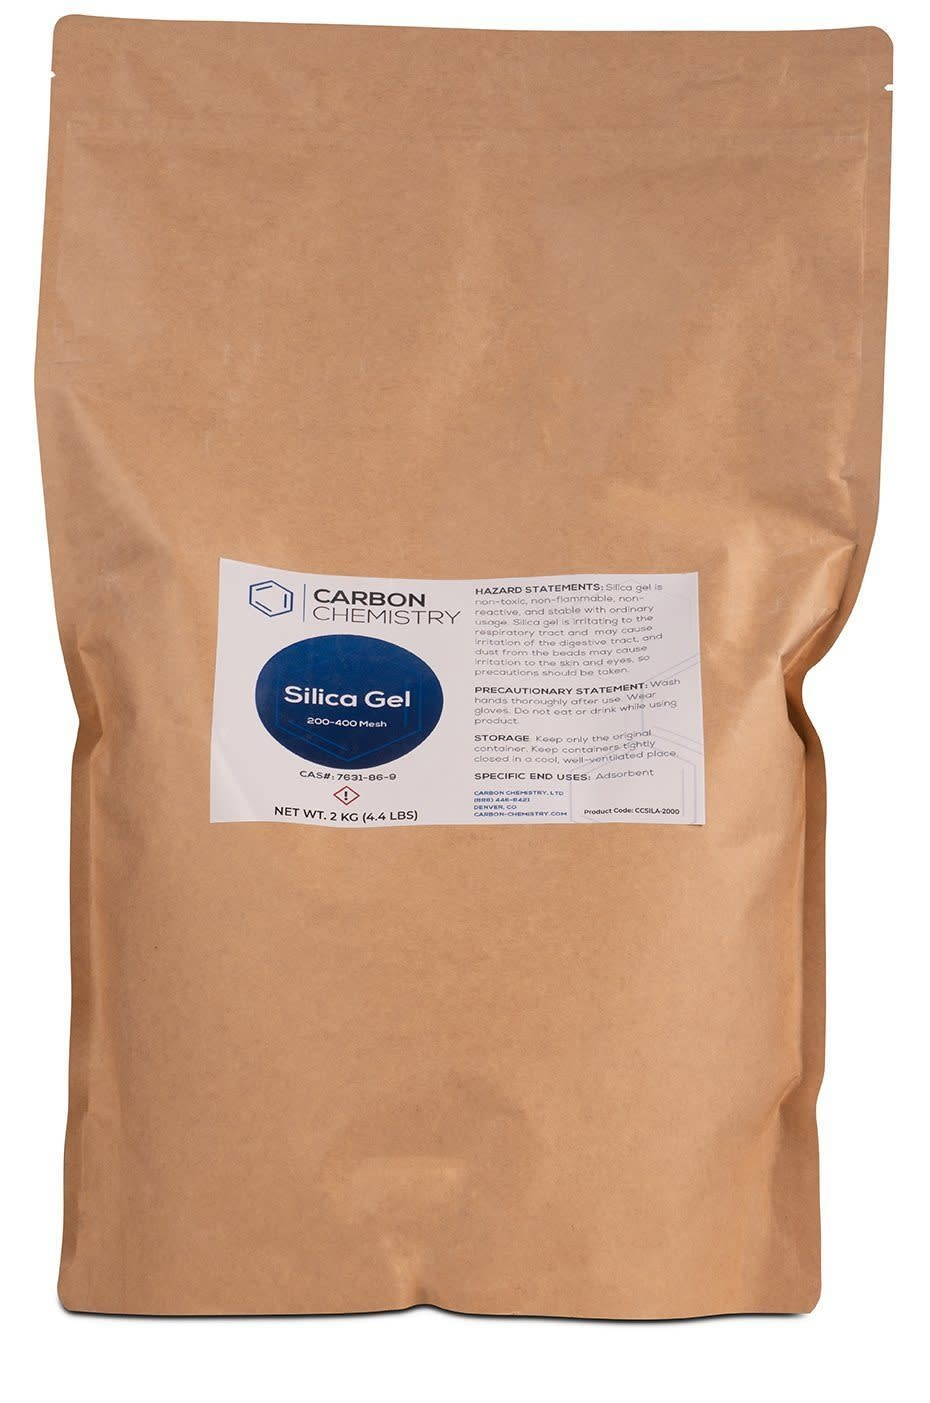 Carbon Chemistry Carbon Chemistry - Silica Gel (Silica 60A, 200-400 Mesh)